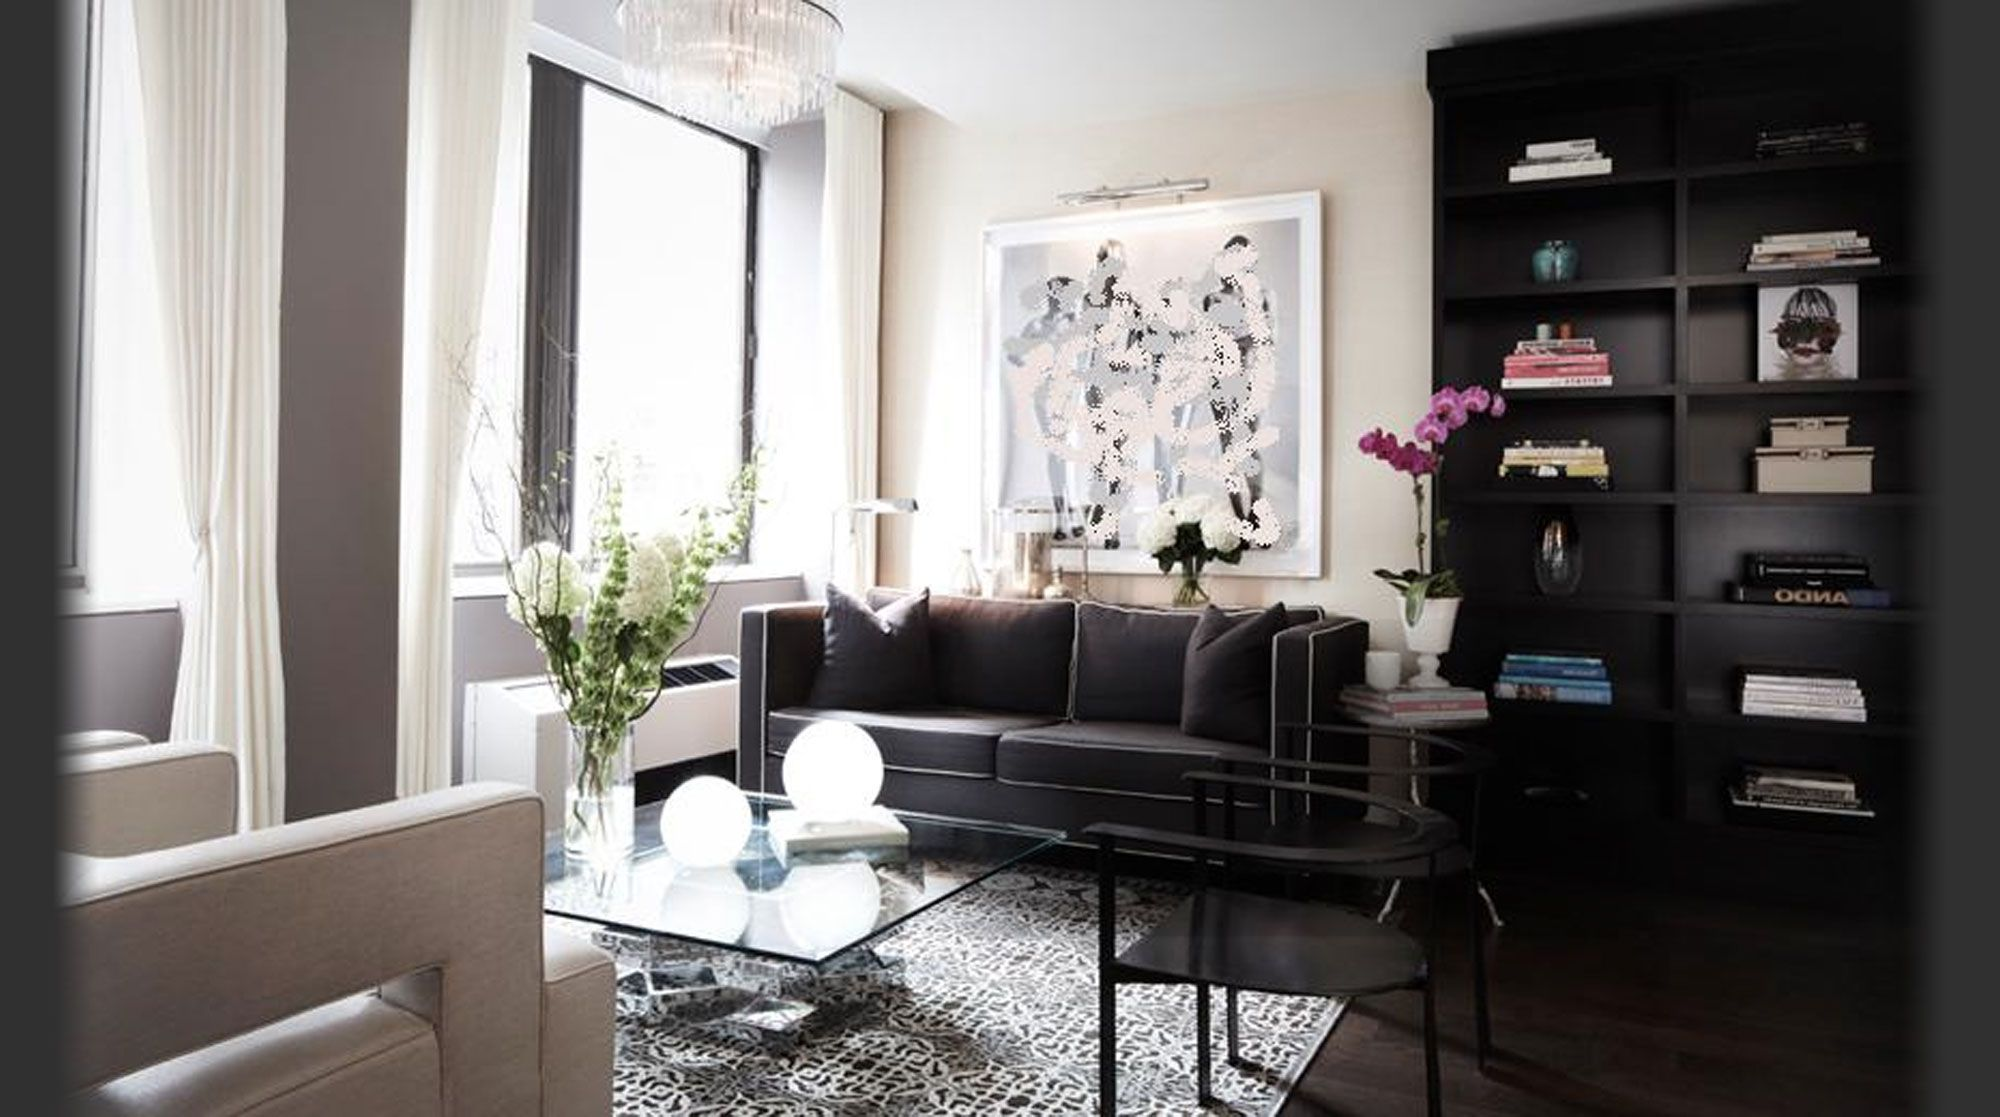 I Often Dream Of Living In The Luxury Of Such A Well Decorated Living  Space. I Like The Black Couch And Bookcase And I Will Have To Aim For An  Apartment ...